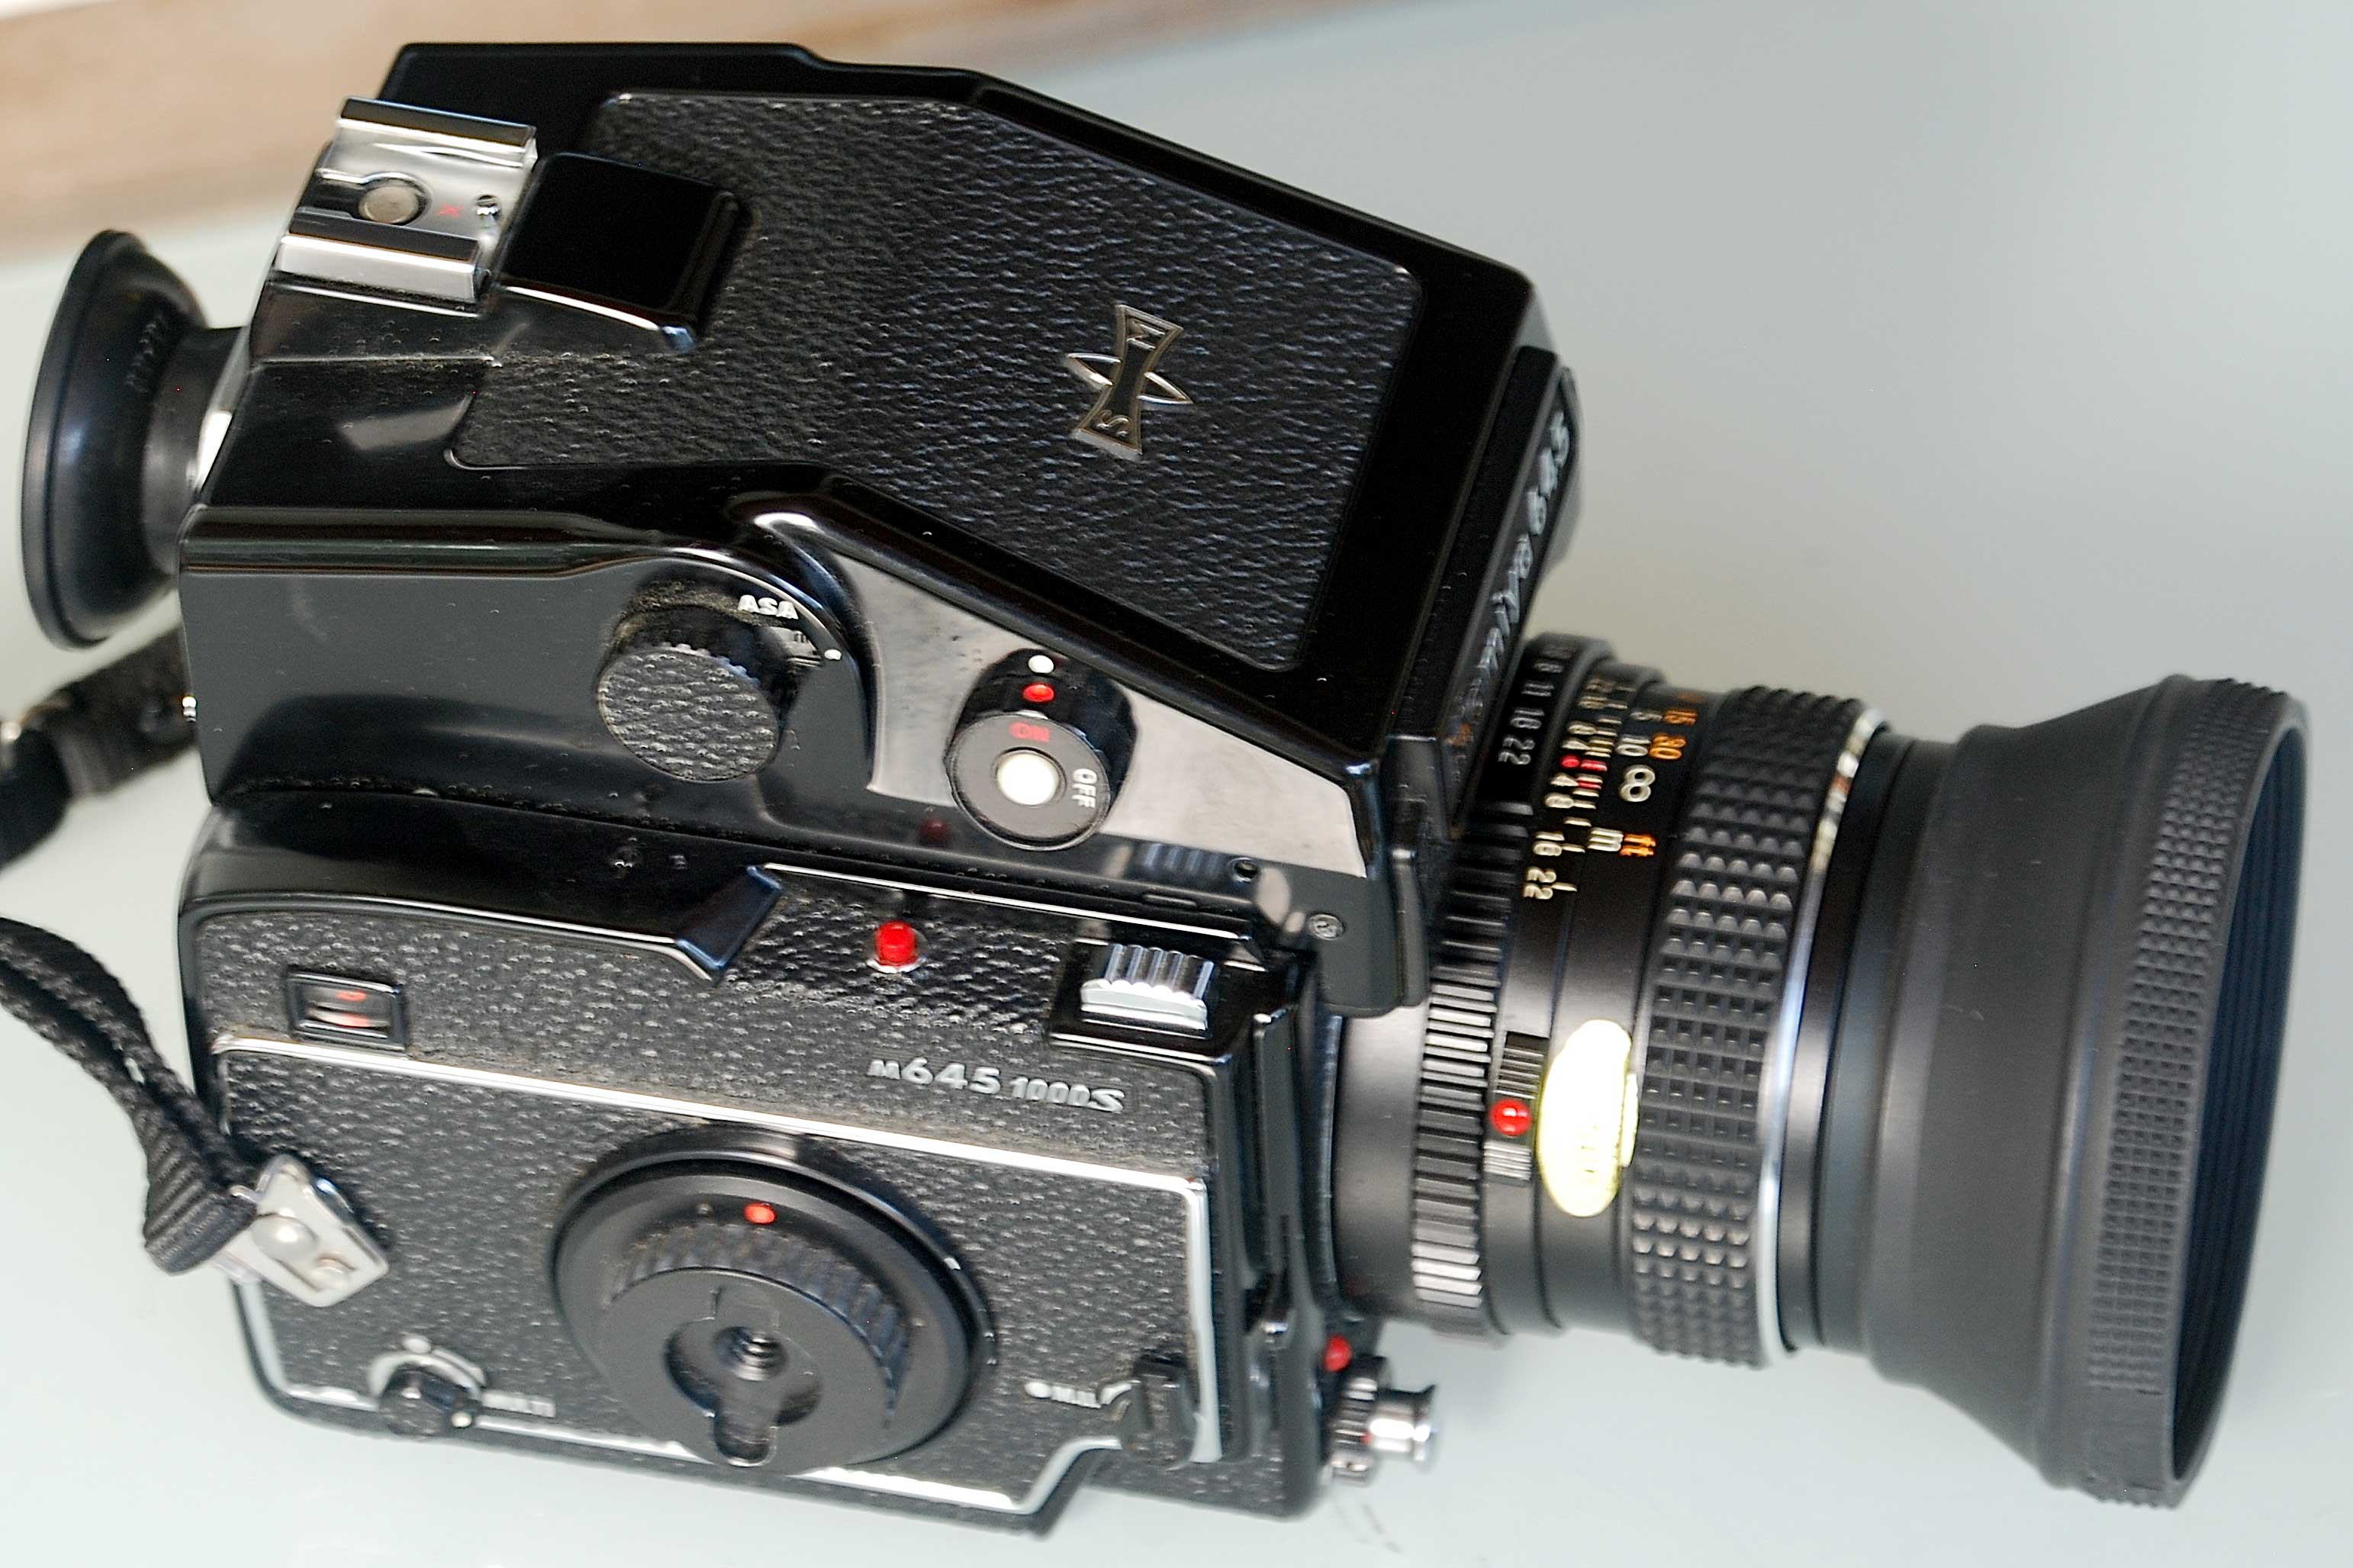 For Sale: Mamiya m645 1000S Cased Set, Medium Format Film Camera